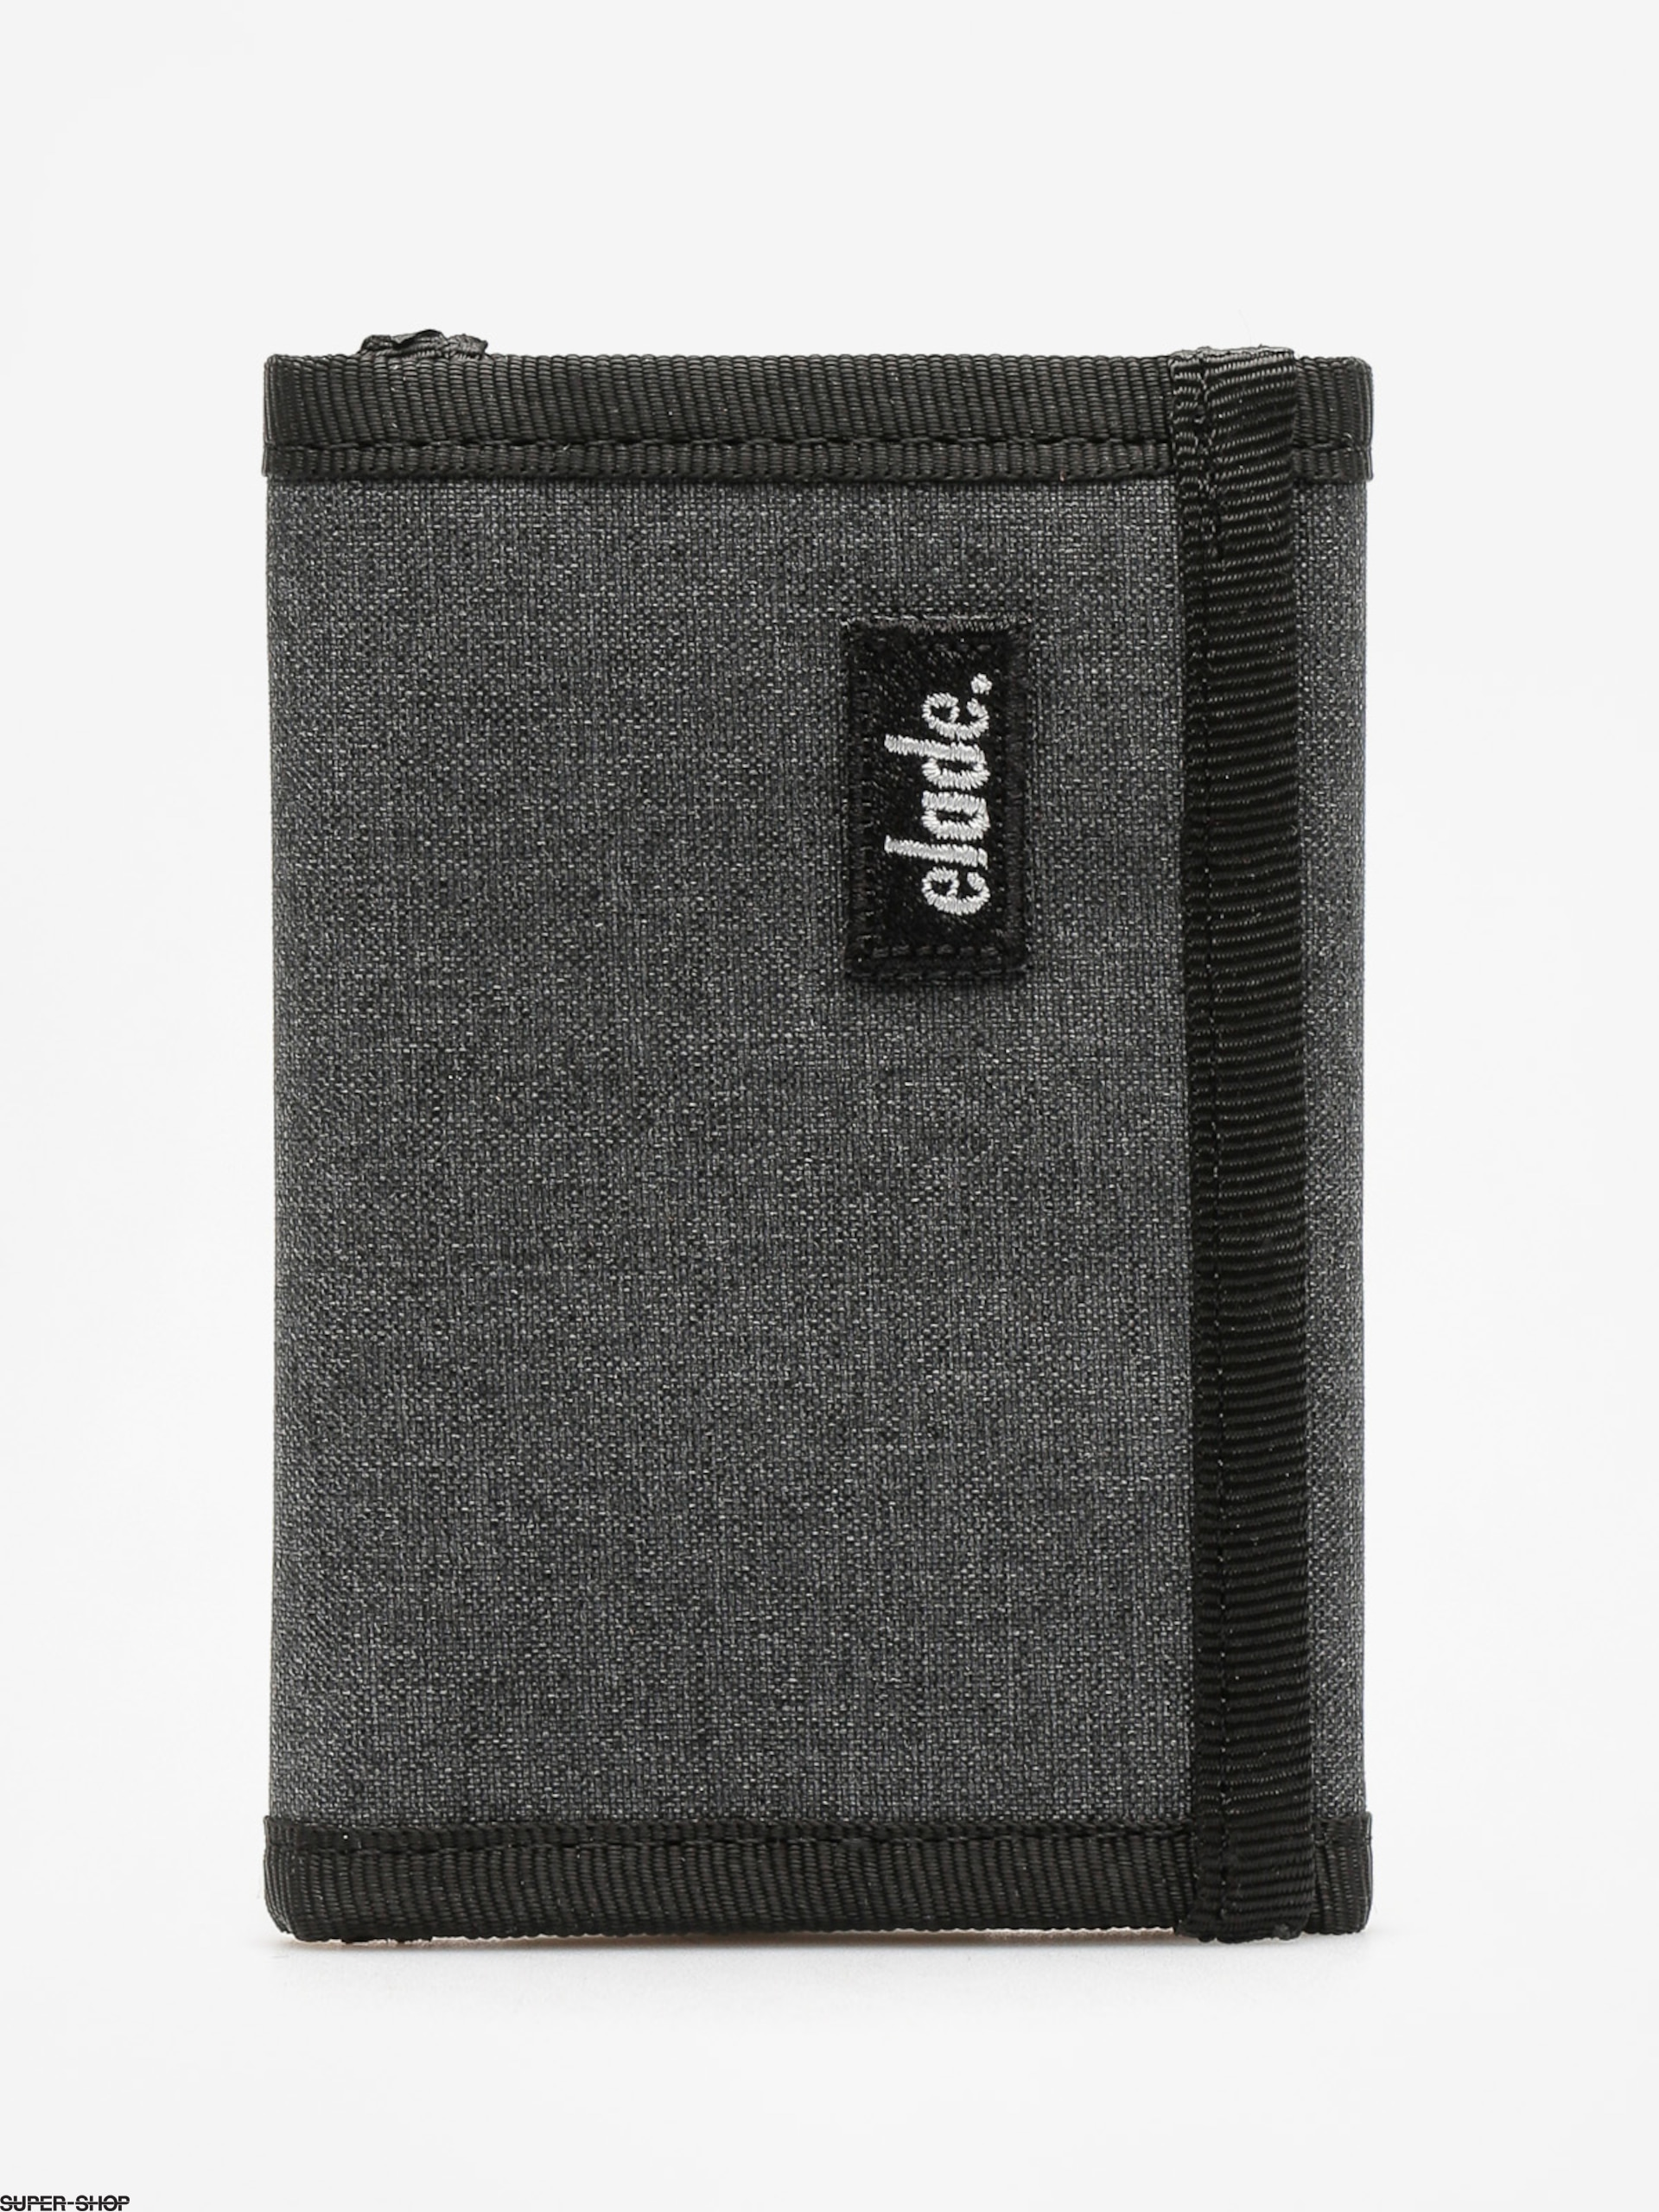 Elade Geldbörse Wallet (dark grey)